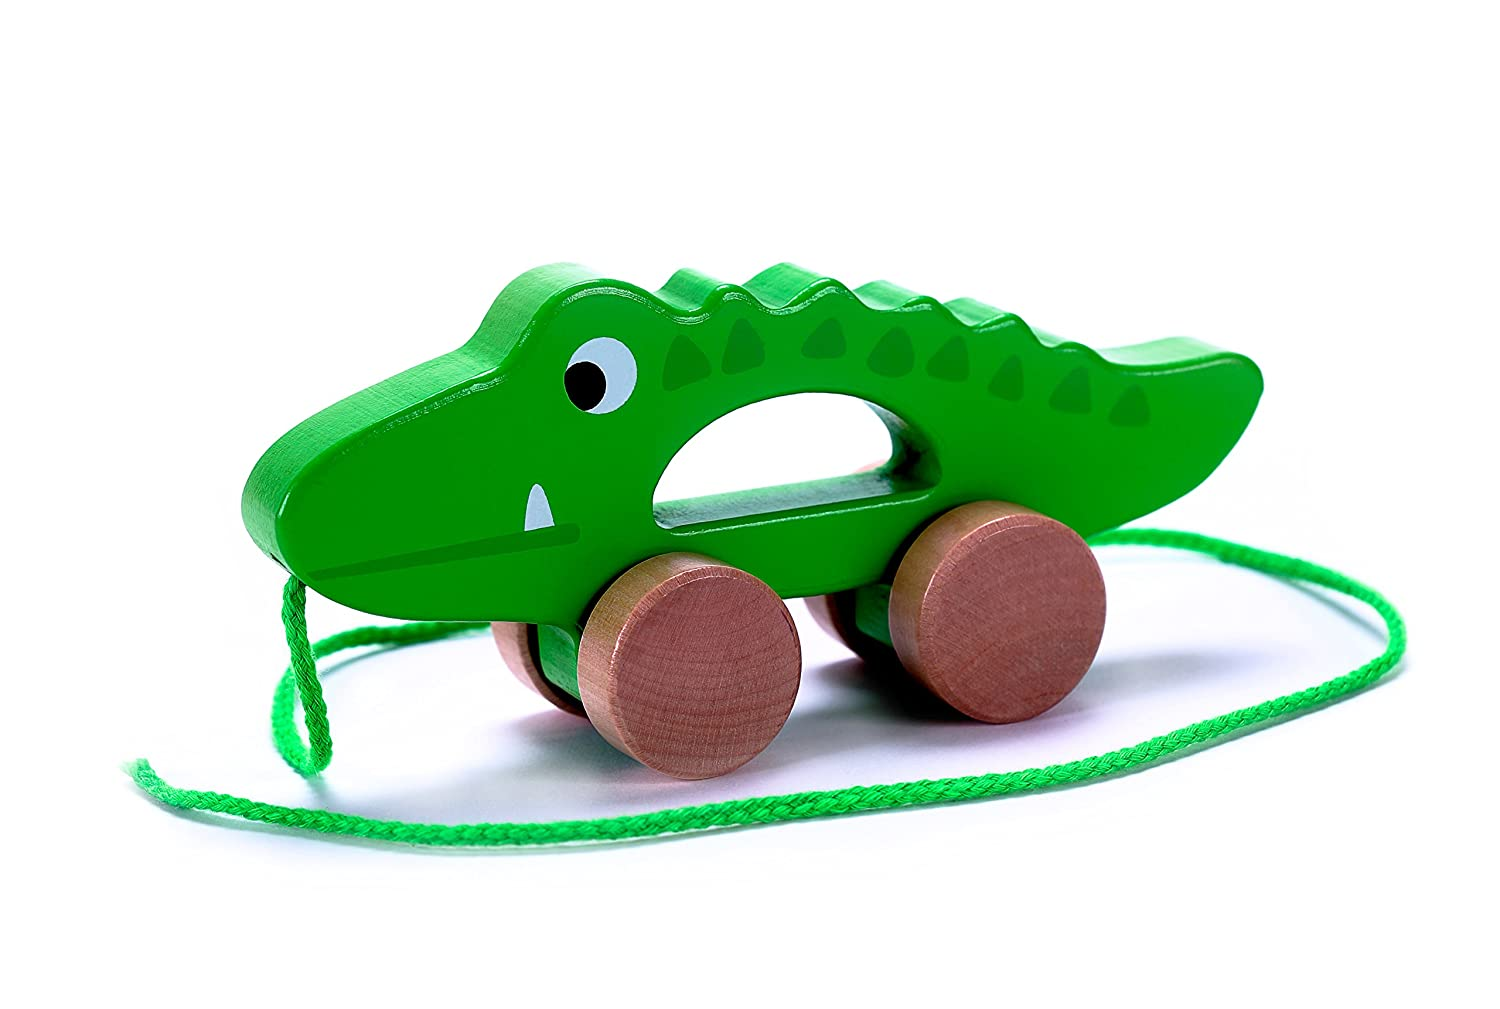 Cubbie Lee Adorable Crocodile Wooden Push Pull Along Toy for Baby Toddler Rolls Easy Sturdy String Attached to Animal | Classic Developmental Toy for 1 2 Year Old Boys Girls